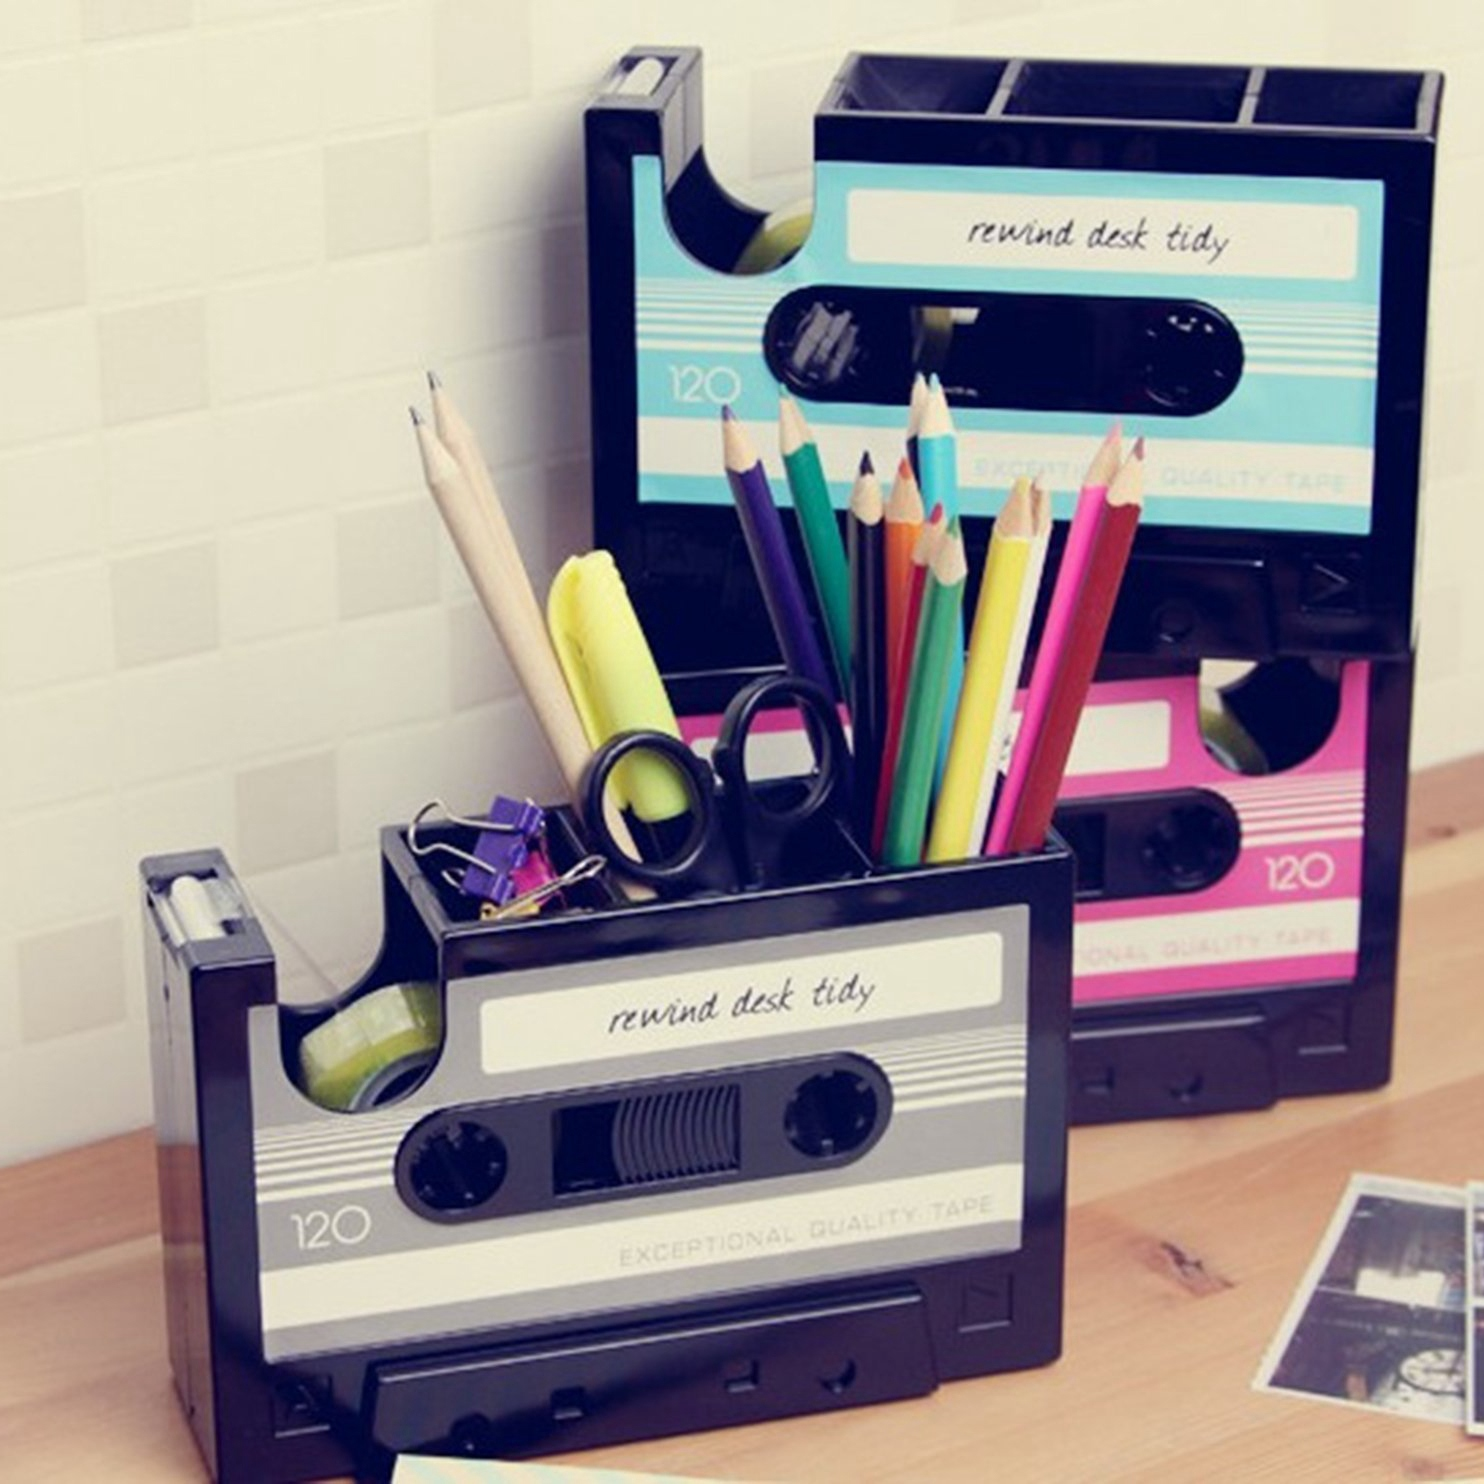 Vintage Cassette Tape Dispenser Pencil Holder Pen Container Vase Pot with Transparent Tape Desk Tidy Students Stationery Stand Pen Box Organizer Office Supplies for Kids Boys Teen Girls Blue